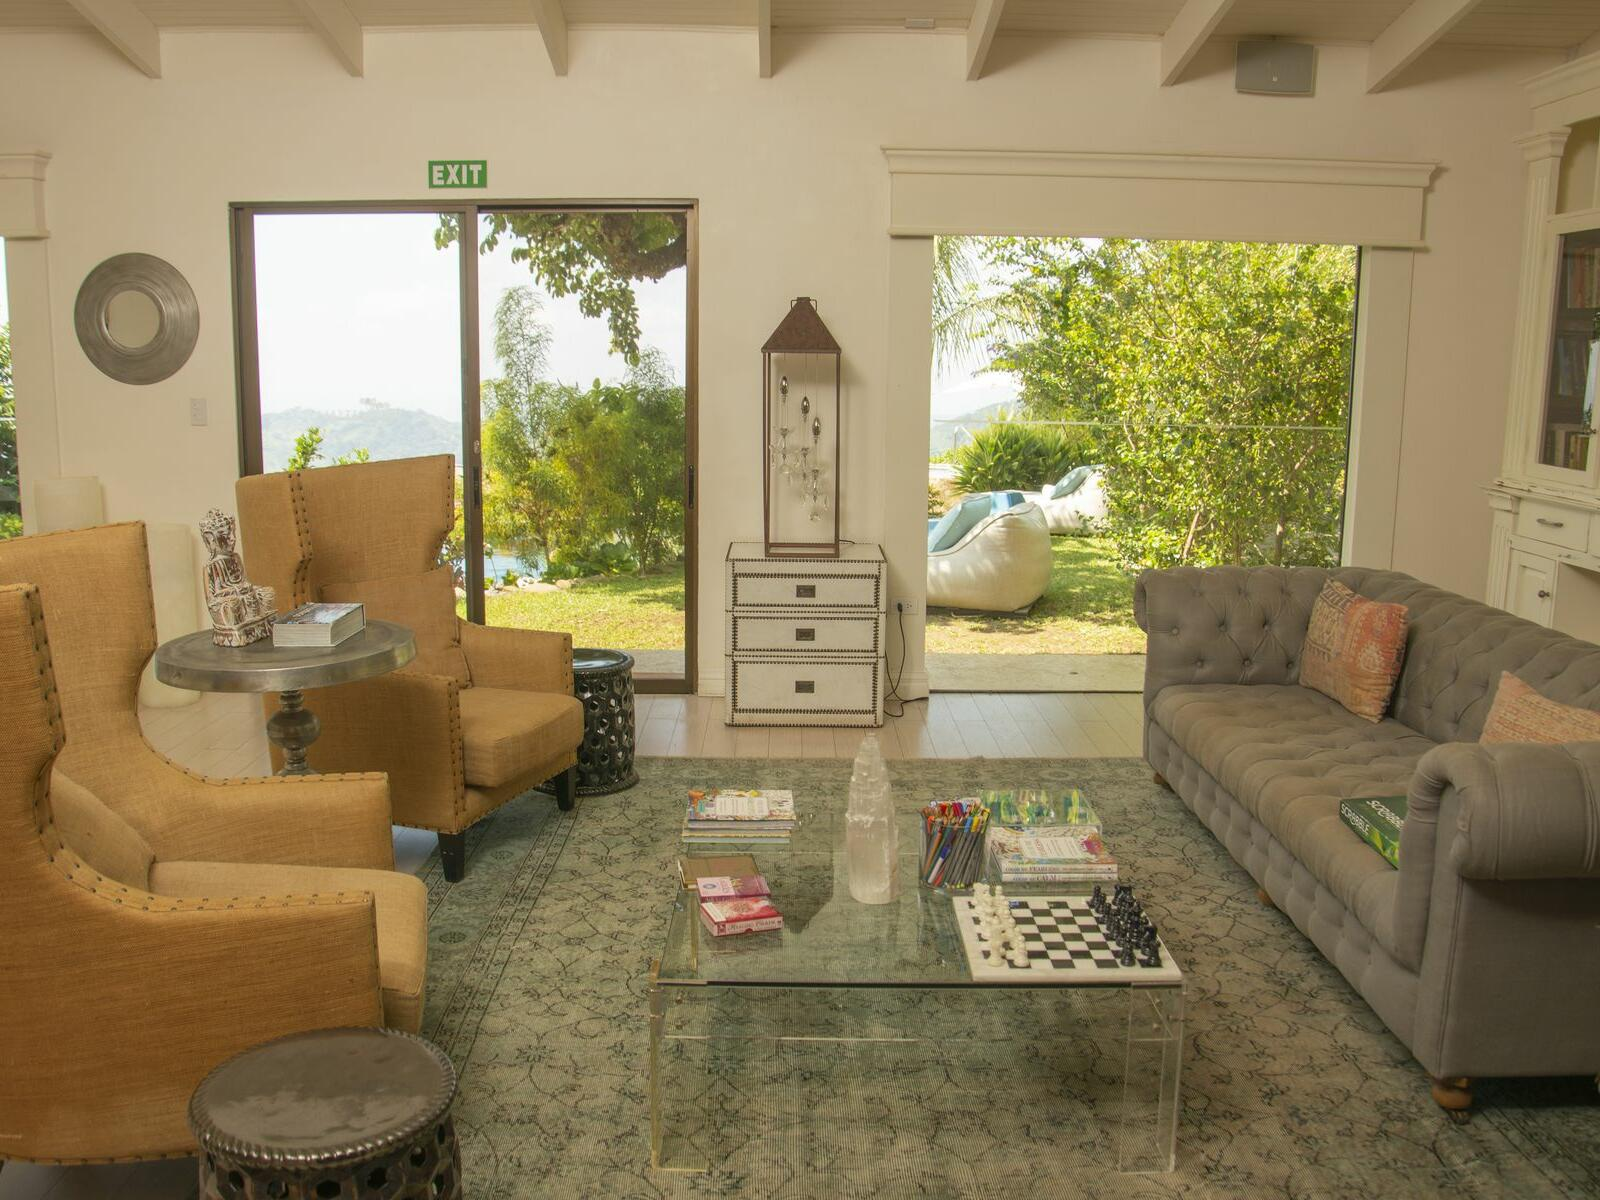 hotel living room with sofa, accent chair and balcony